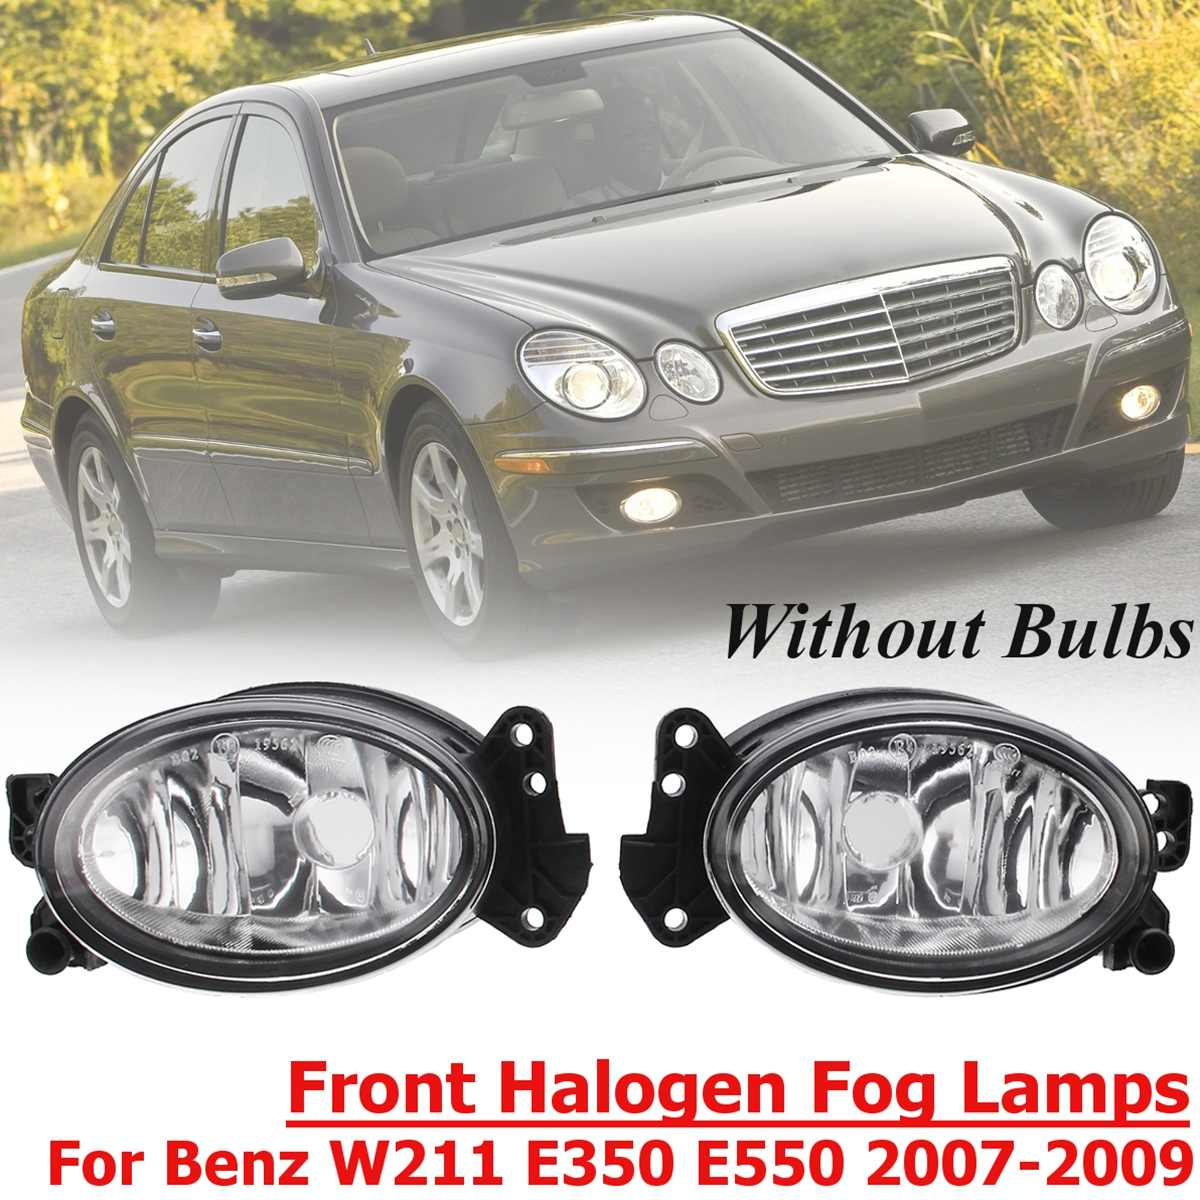 A1698201556 for Benz W211 W204  E350 E550 2007 2008 2009 1 Pair L+R Front Fog Light Lamp No Bulb Front Halogen Lamps FrontA1698201556 for Benz W211 W204  E350 E550 2007 2008 2009 1 Pair L+R Front Fog Light Lamp No Bulb Front Halogen Lamps Front